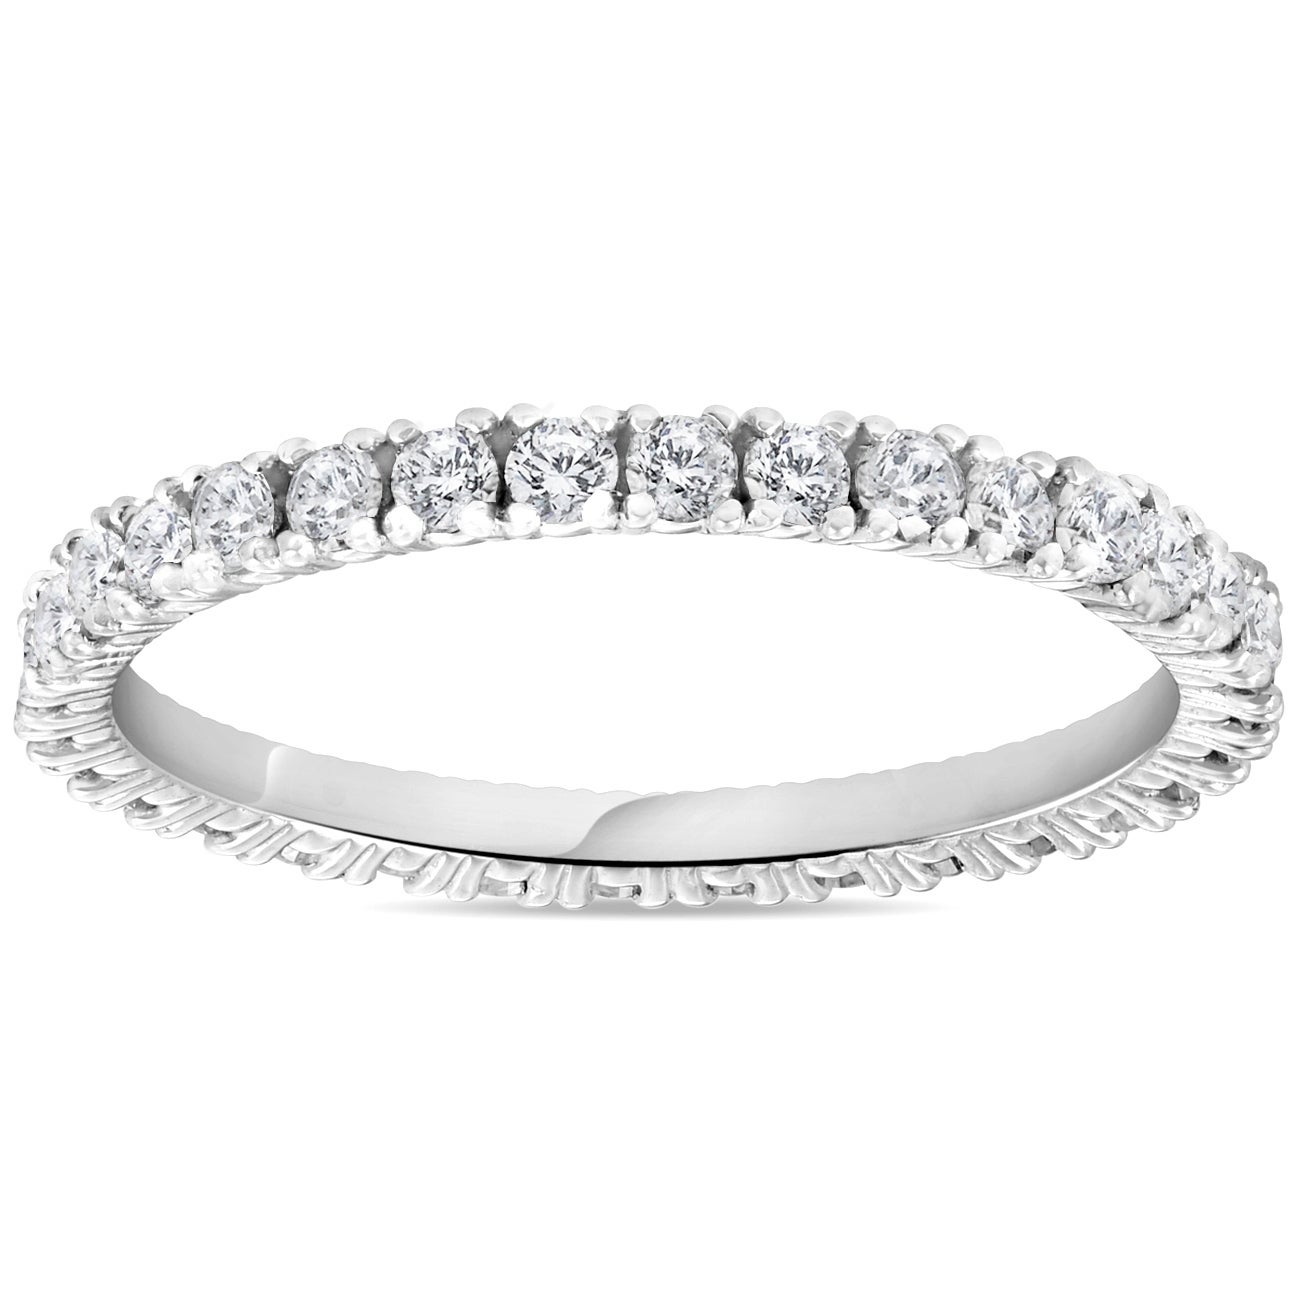 0a174df6a637 Shop Bliss 14k White Gold 5 8 ct TDW Diamond Stackable Wedding Ring Womens  Anniversary Band - On Sale - Free Shipping Today - Overstock - 21530067